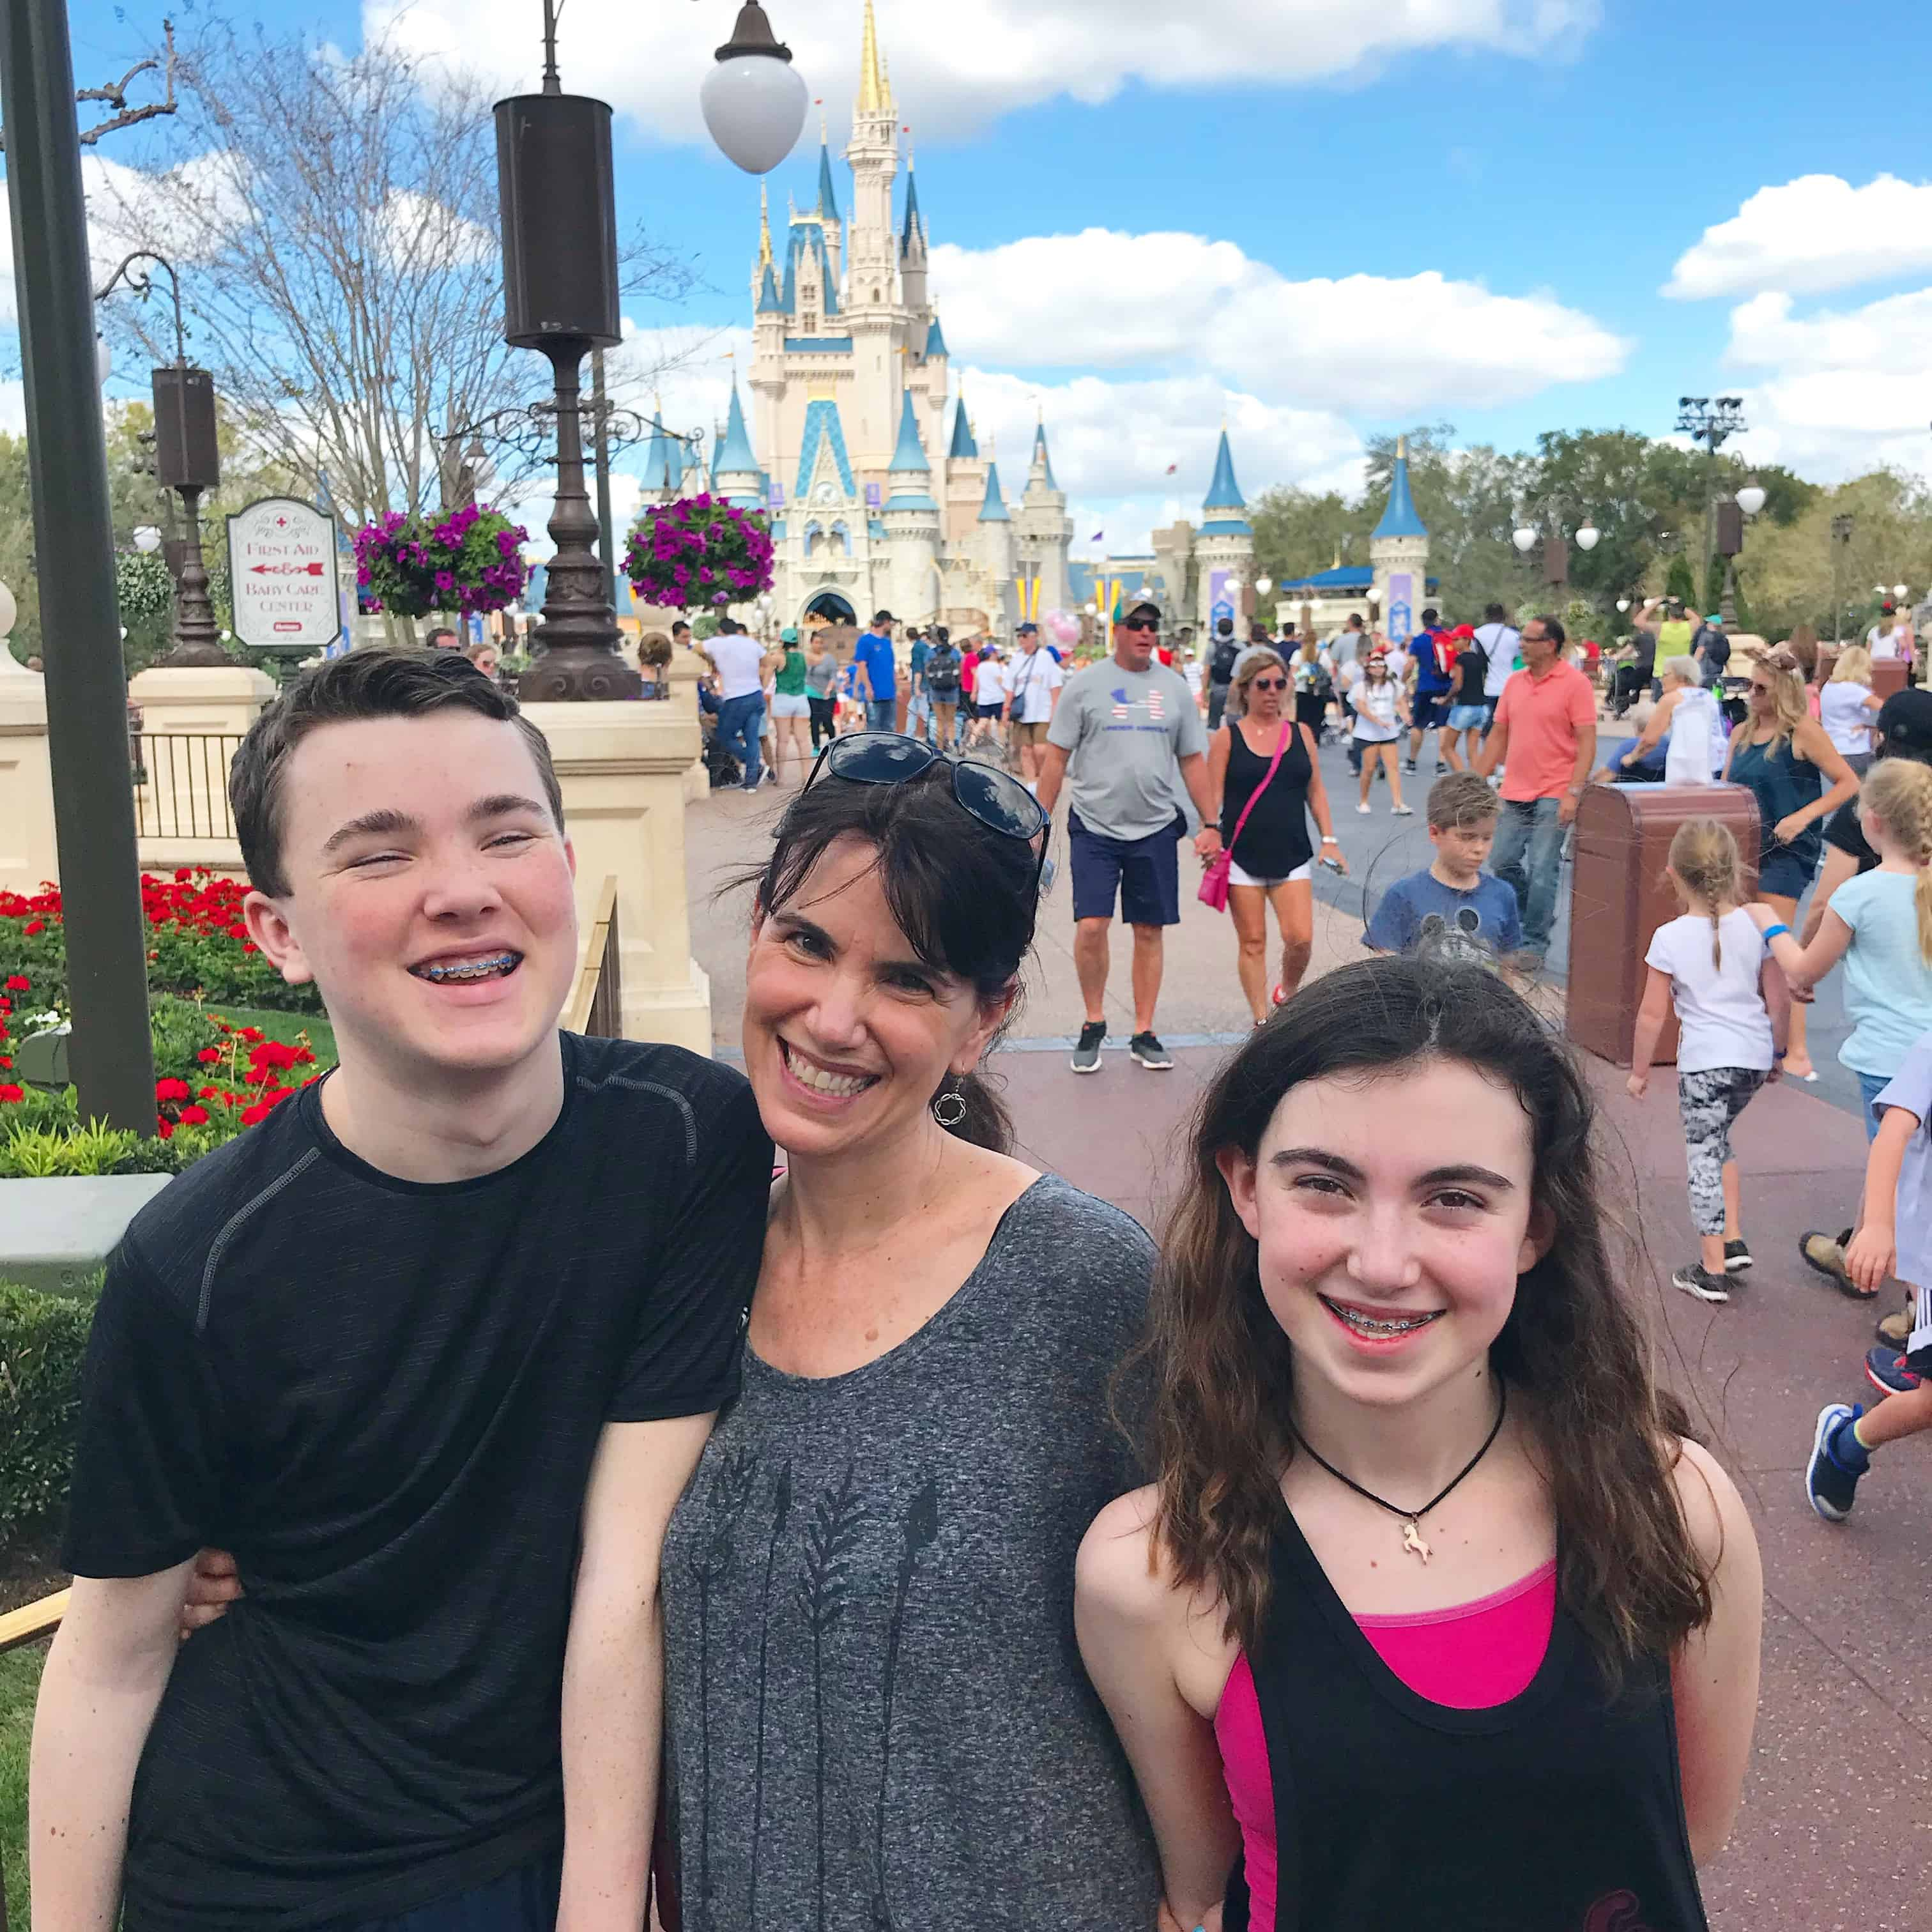 My son giggles as we enjoy our visit to Disney World